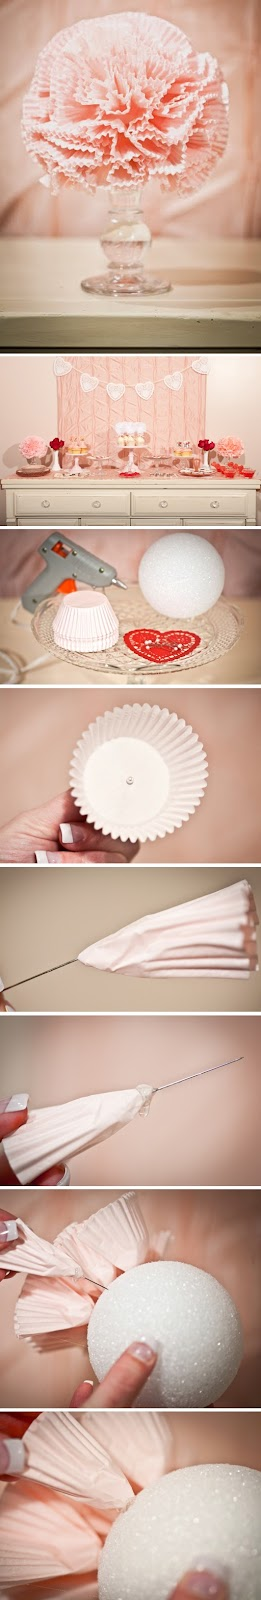 Cupcake+Liner+Pomander+Tutorial Flower Tutorials Directory | Blog Birthday Celebrations